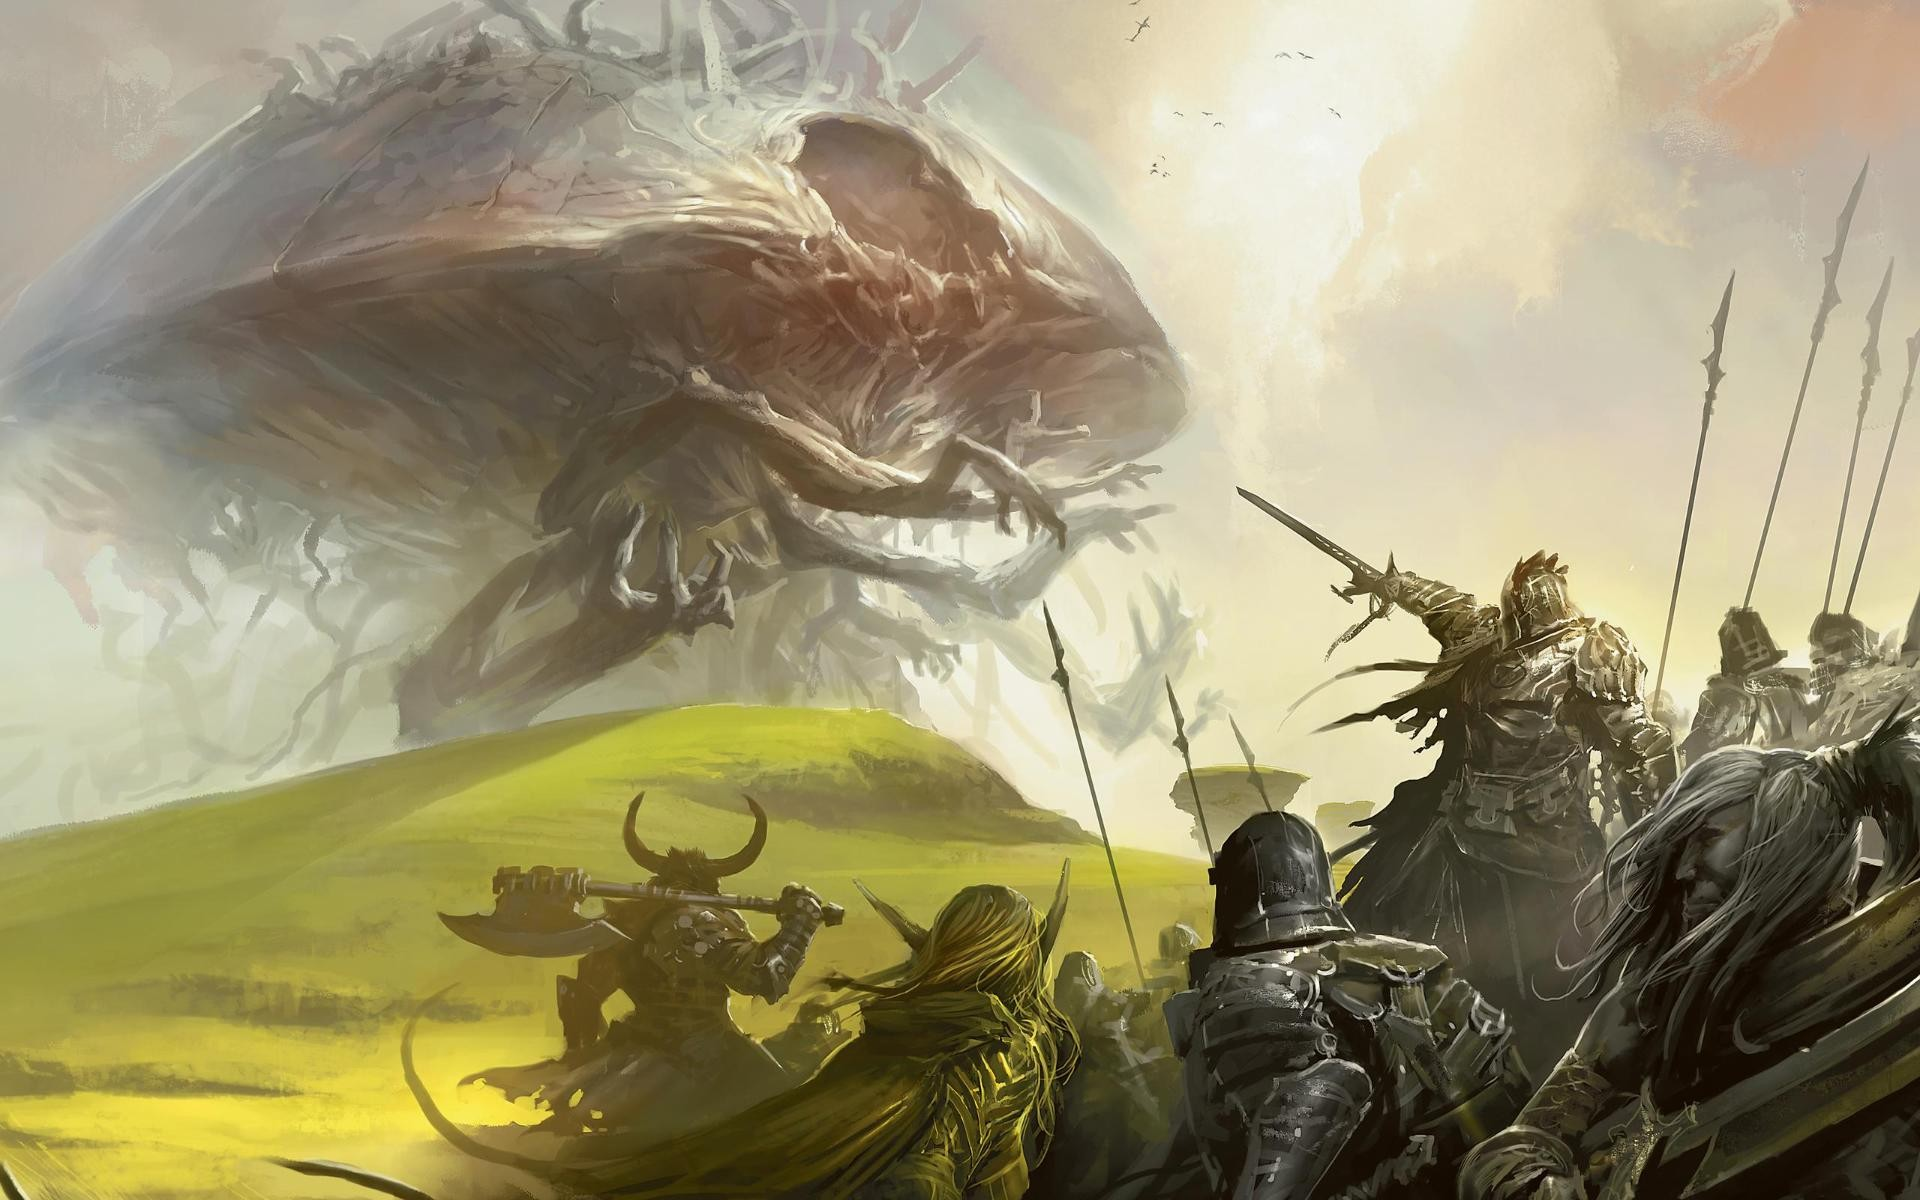 Magic The Gathering Wallpaper Download Free Cool High